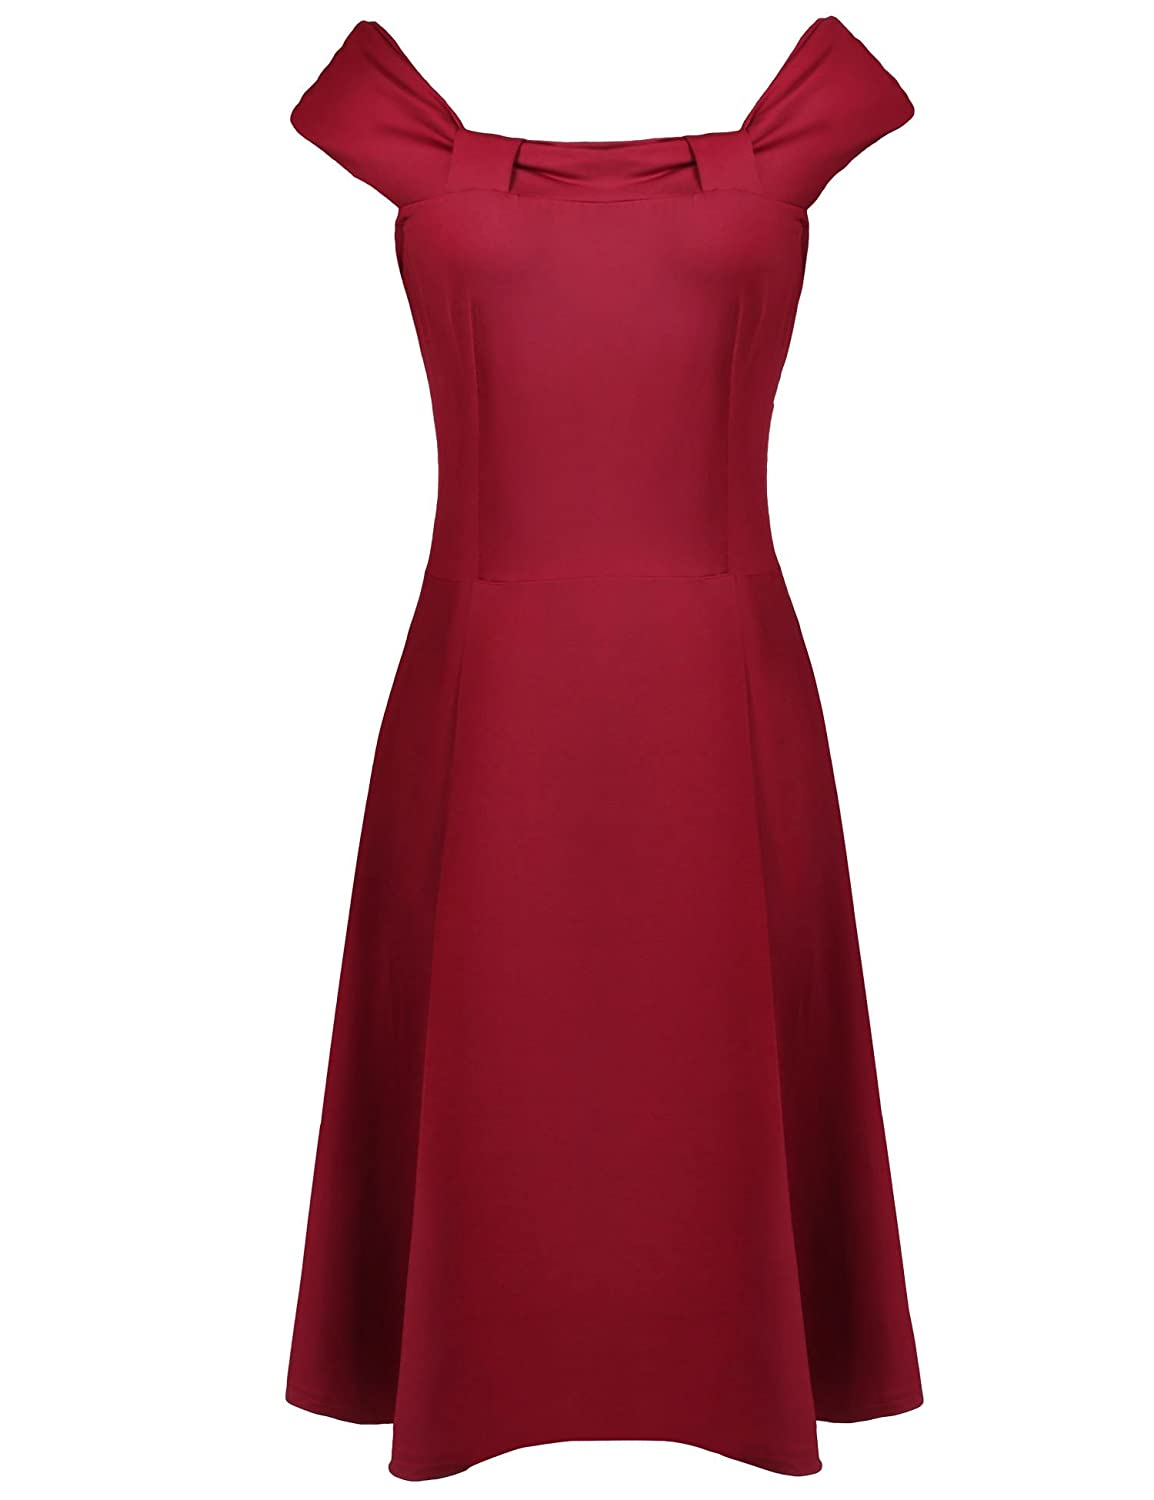 ACEVOG 1950s Evening Women Vintage Party Bridesmaid Empire Waist Cocktail Dress